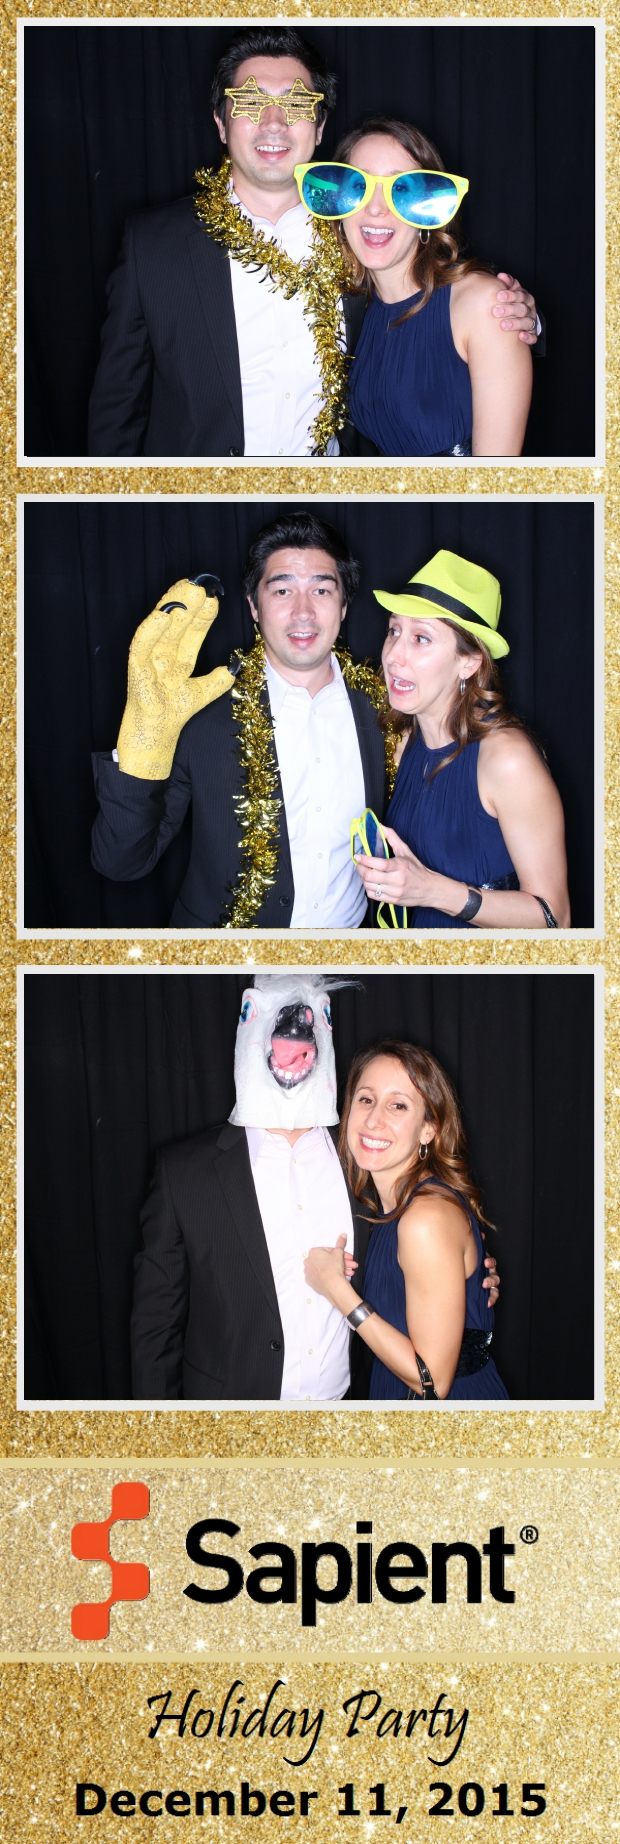 Guest House Events Photo Booth Sapient Holiday Party (85).jpg